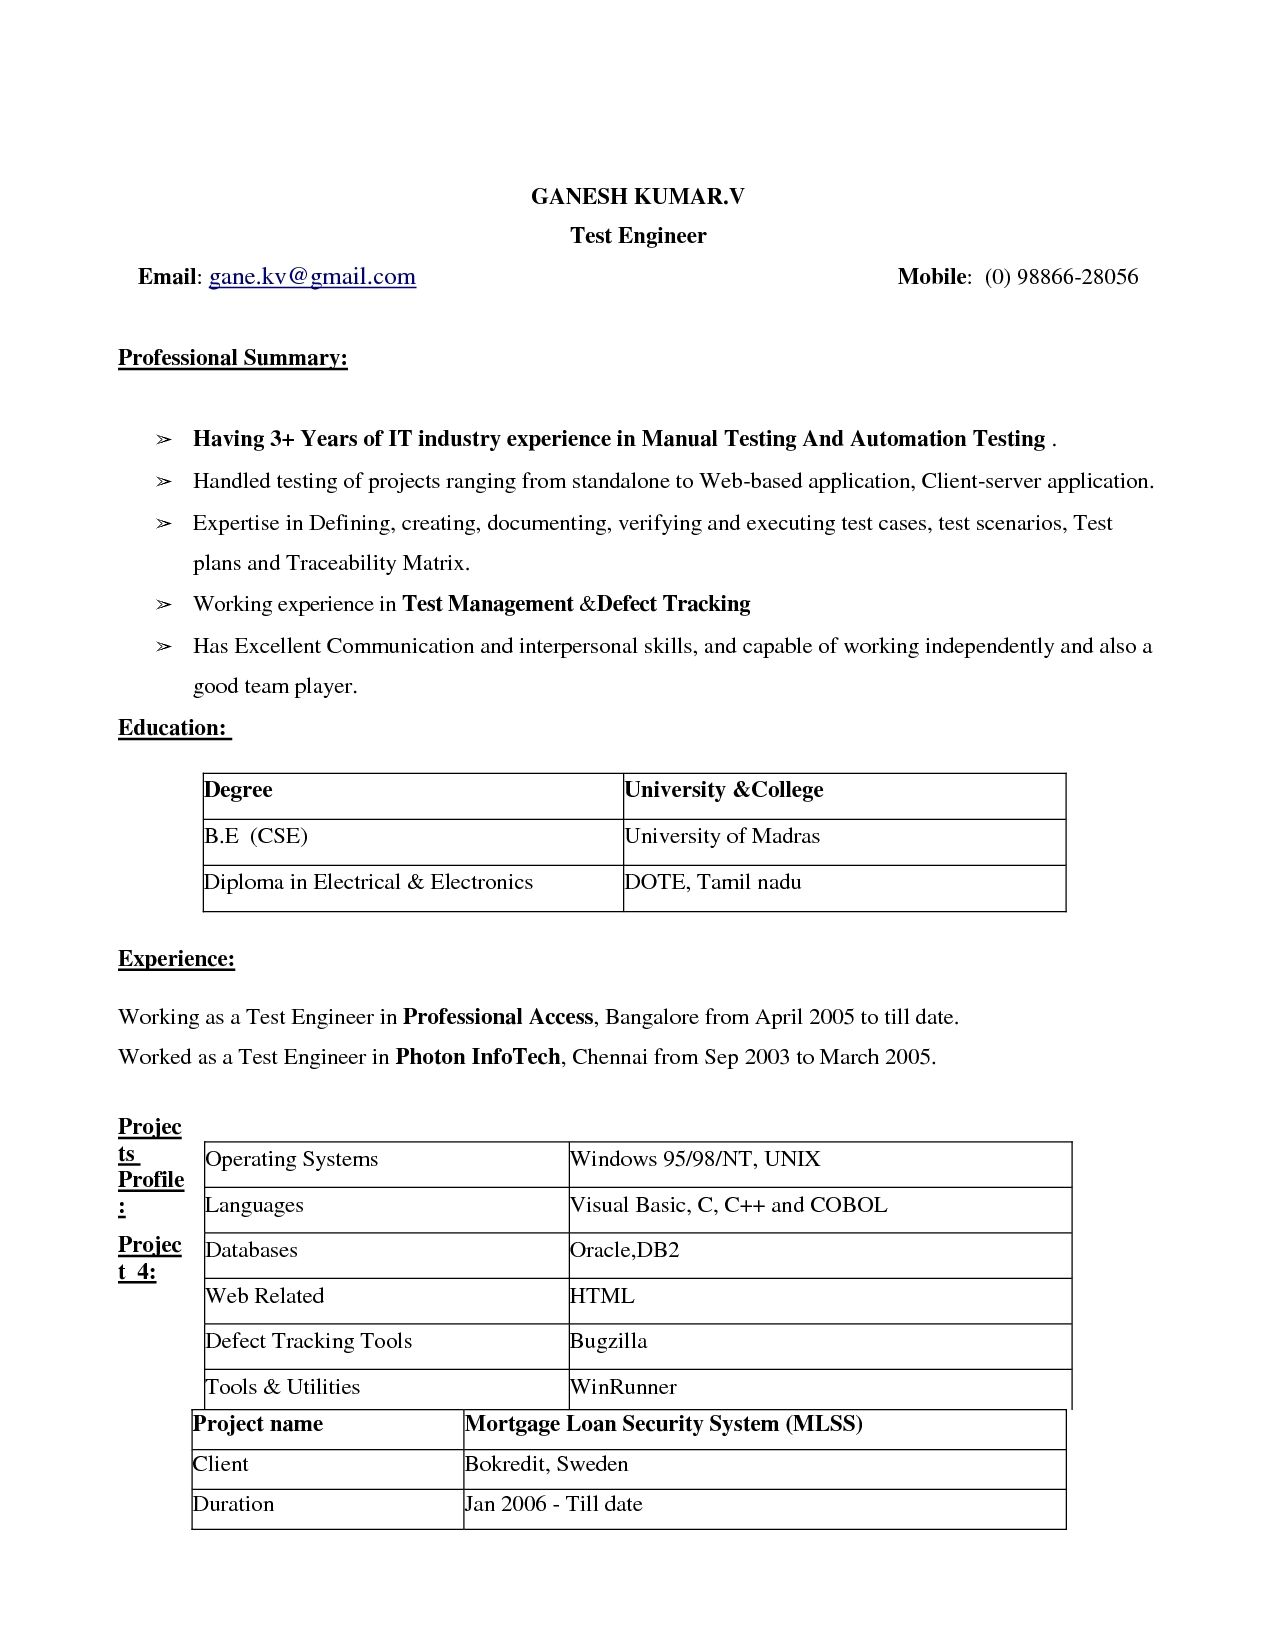 Resume Format Microsoft Word Mesmerizing Resume Formats In Ms Word 9021Eaaae Best Ms Word Resume Format Design Decoration